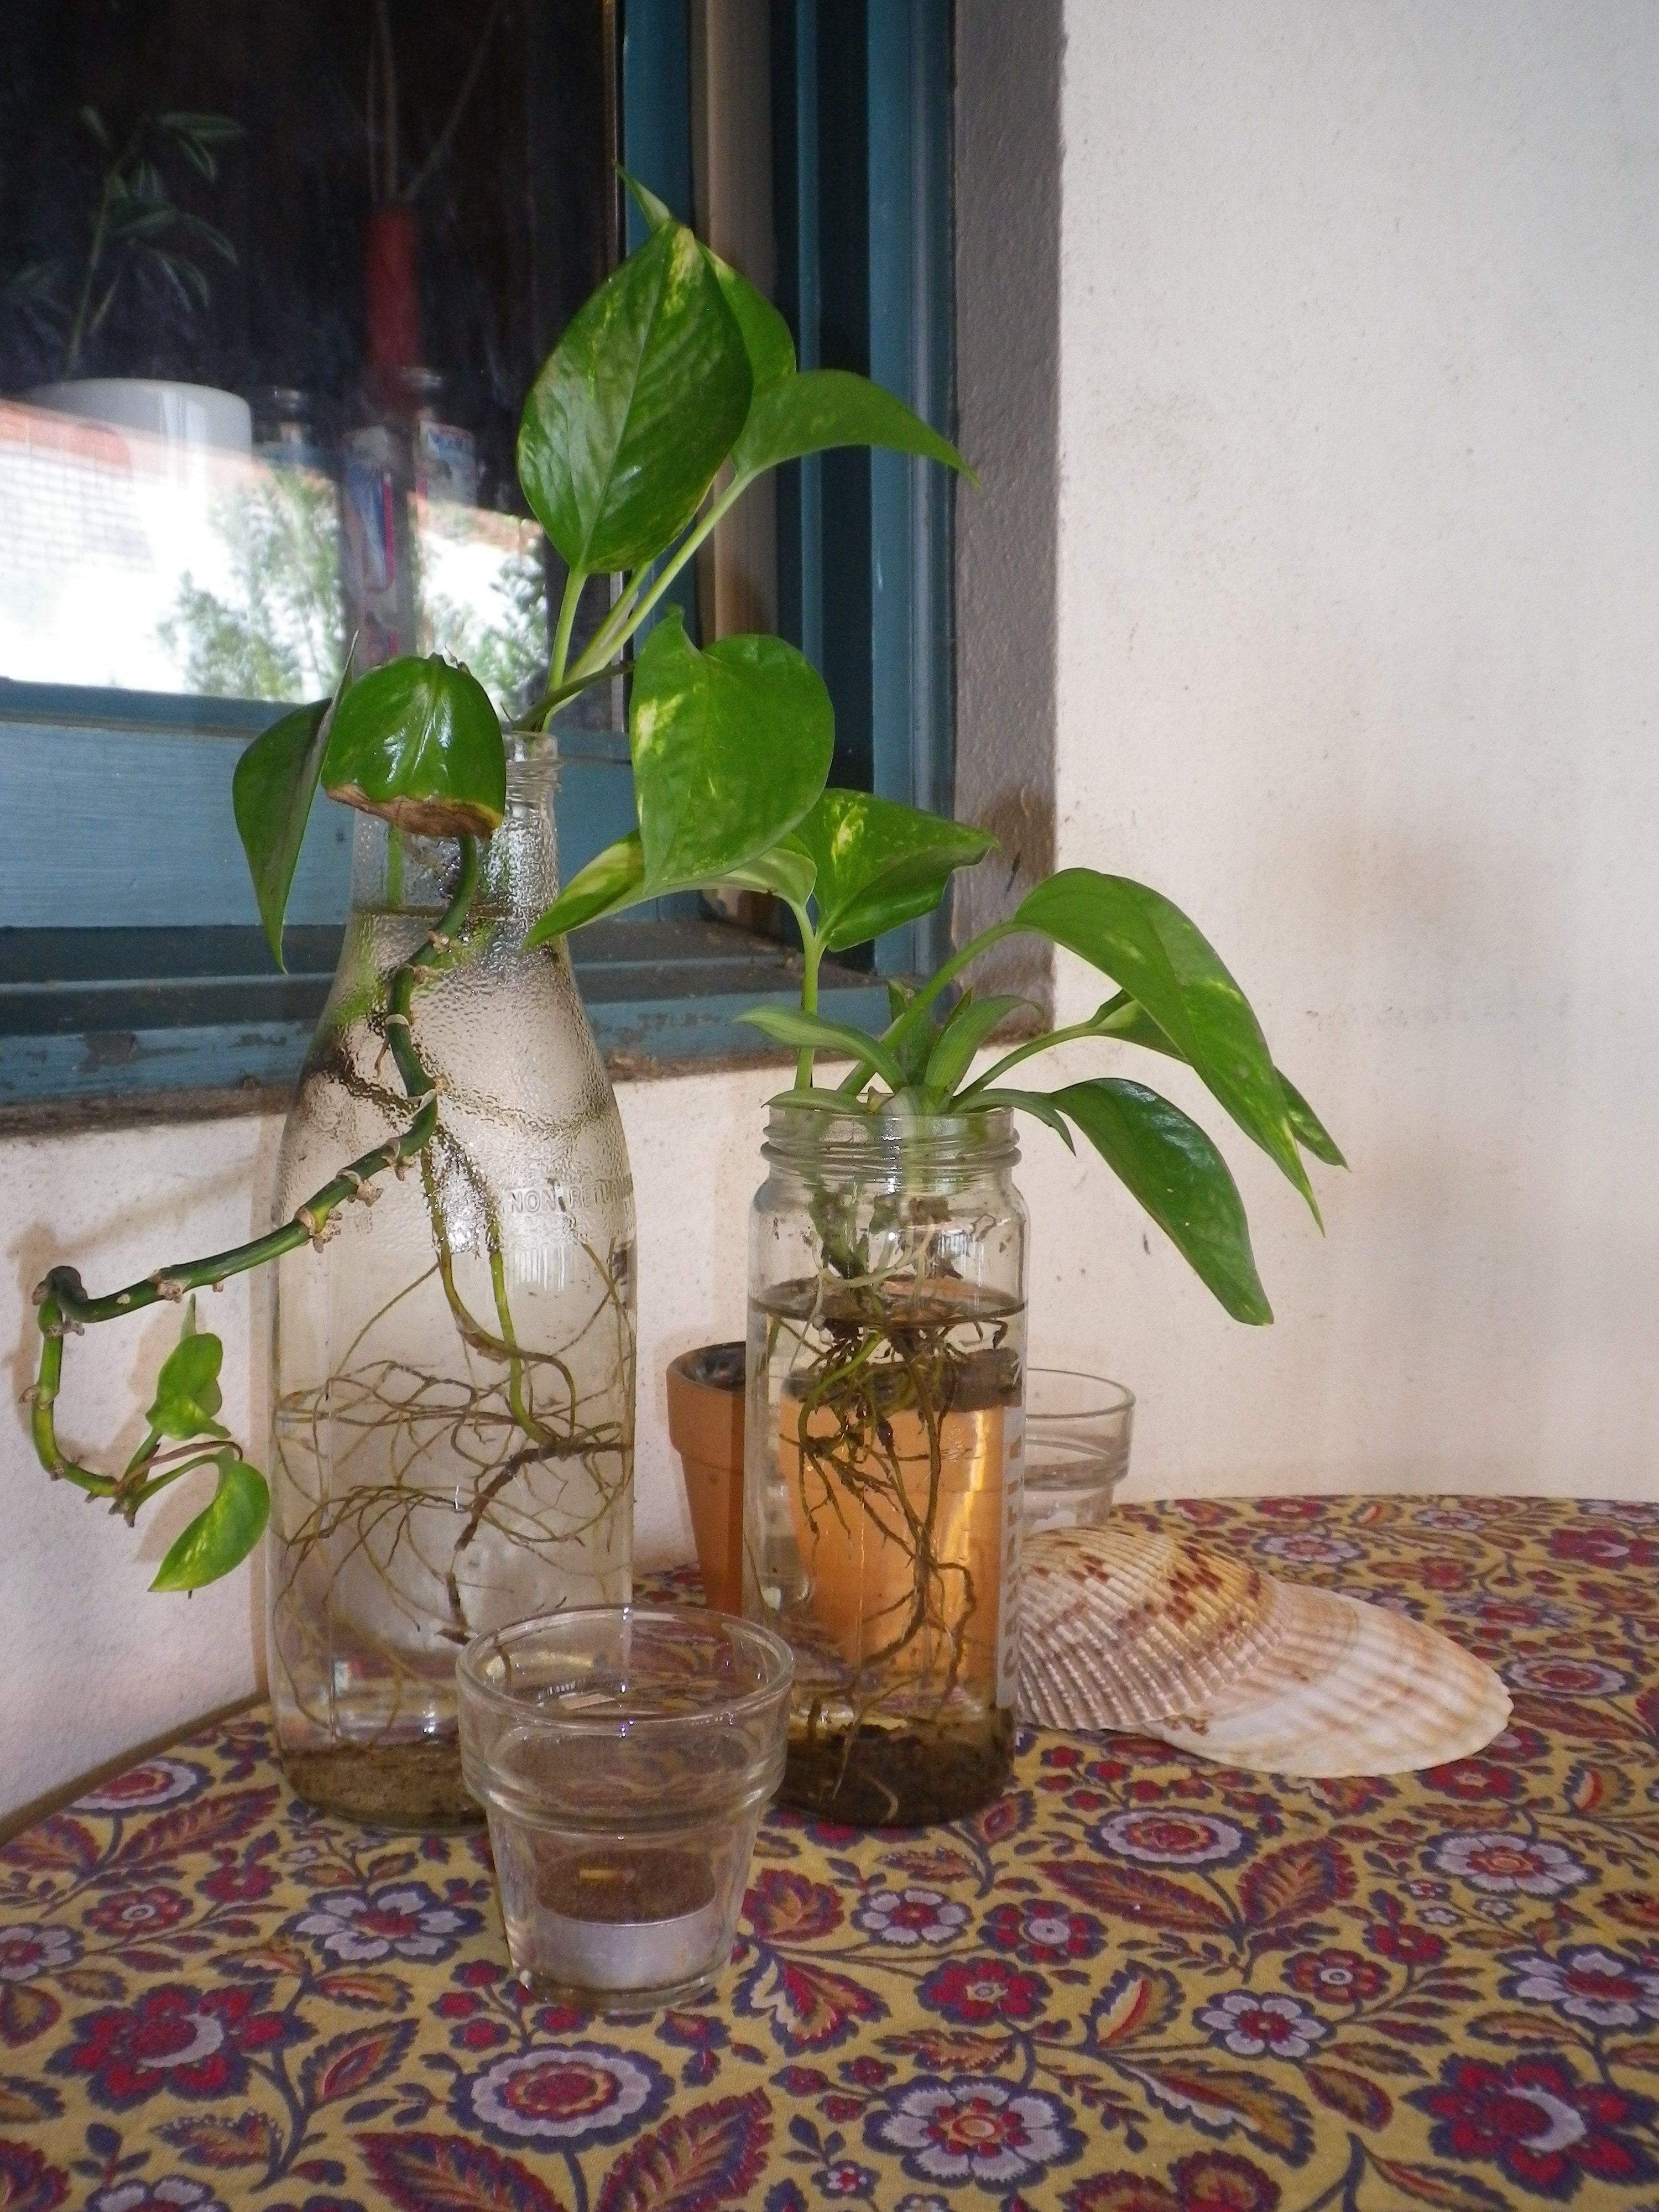 #Outdoor Table Display Golden Pothos Plants In Recycled Glass Jars,